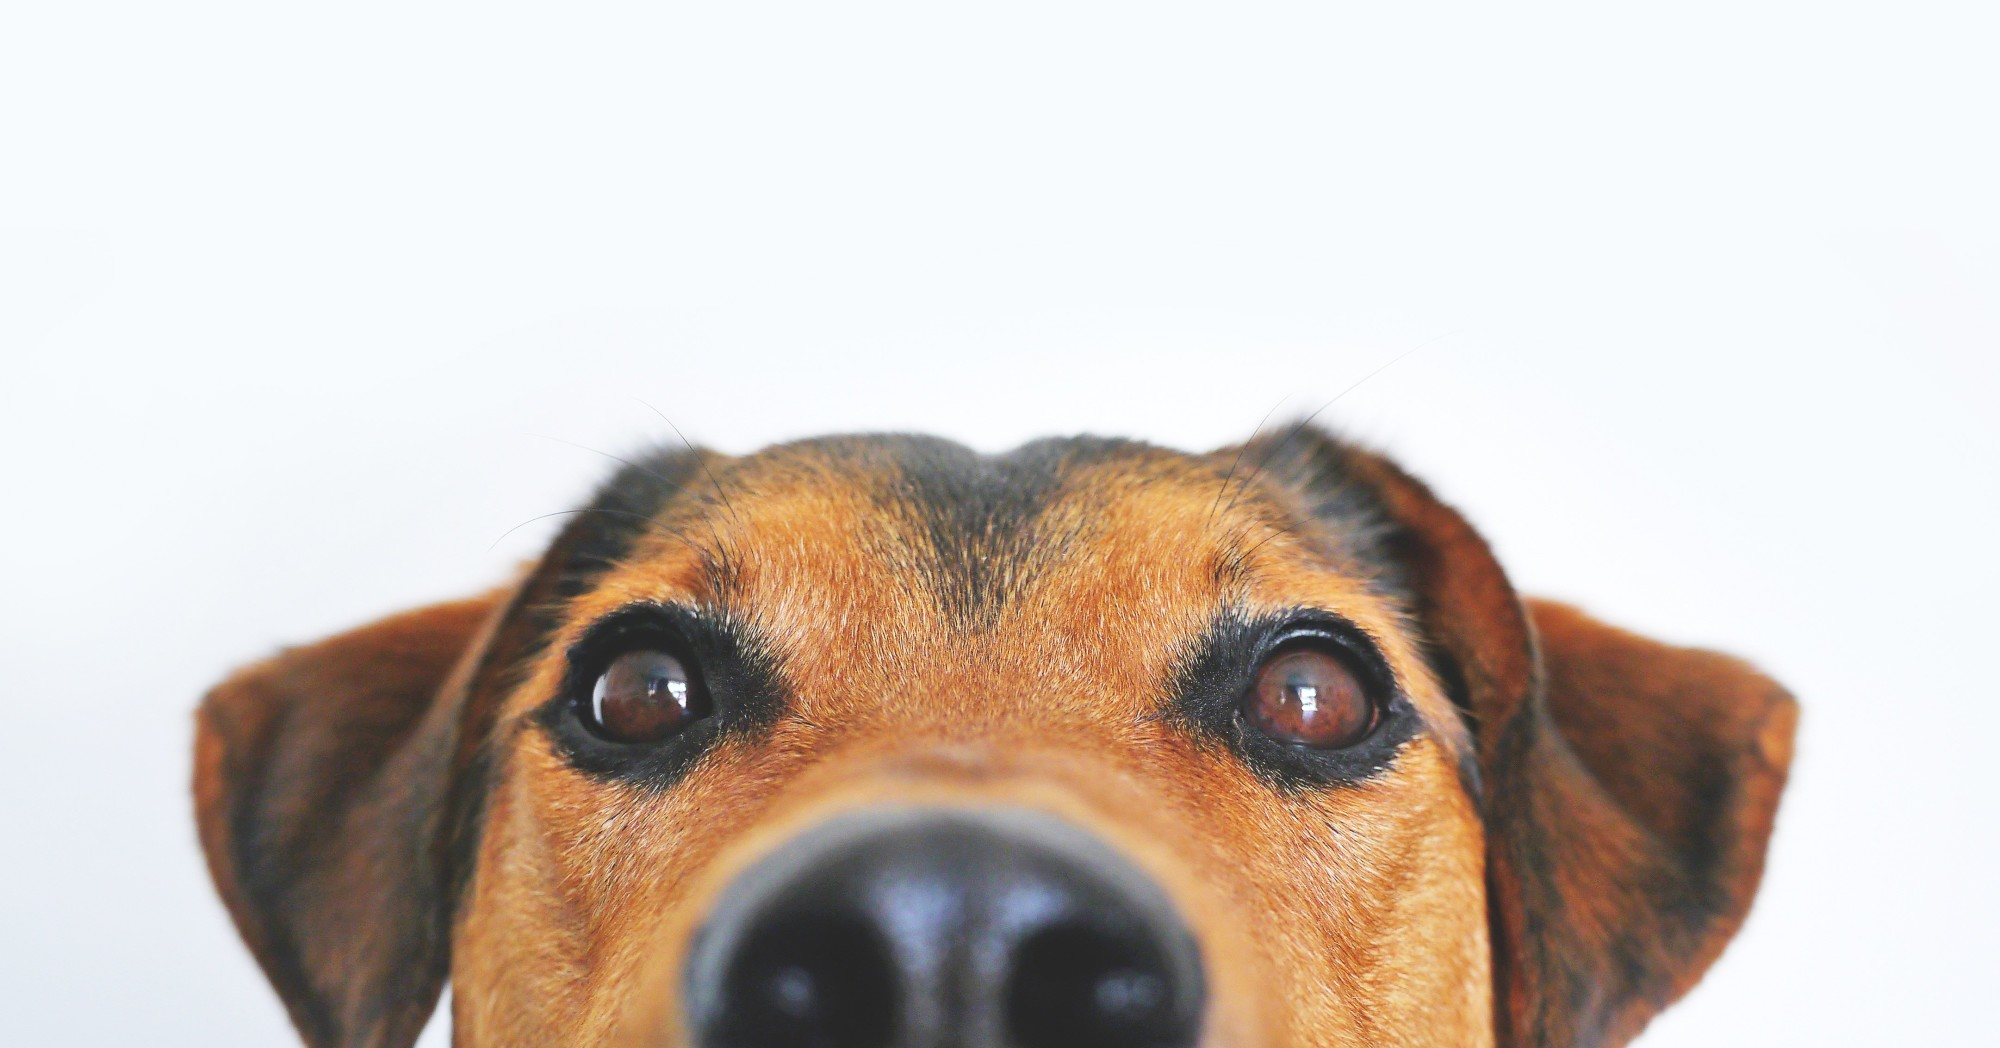 My dog's nose is dry: is it serious?